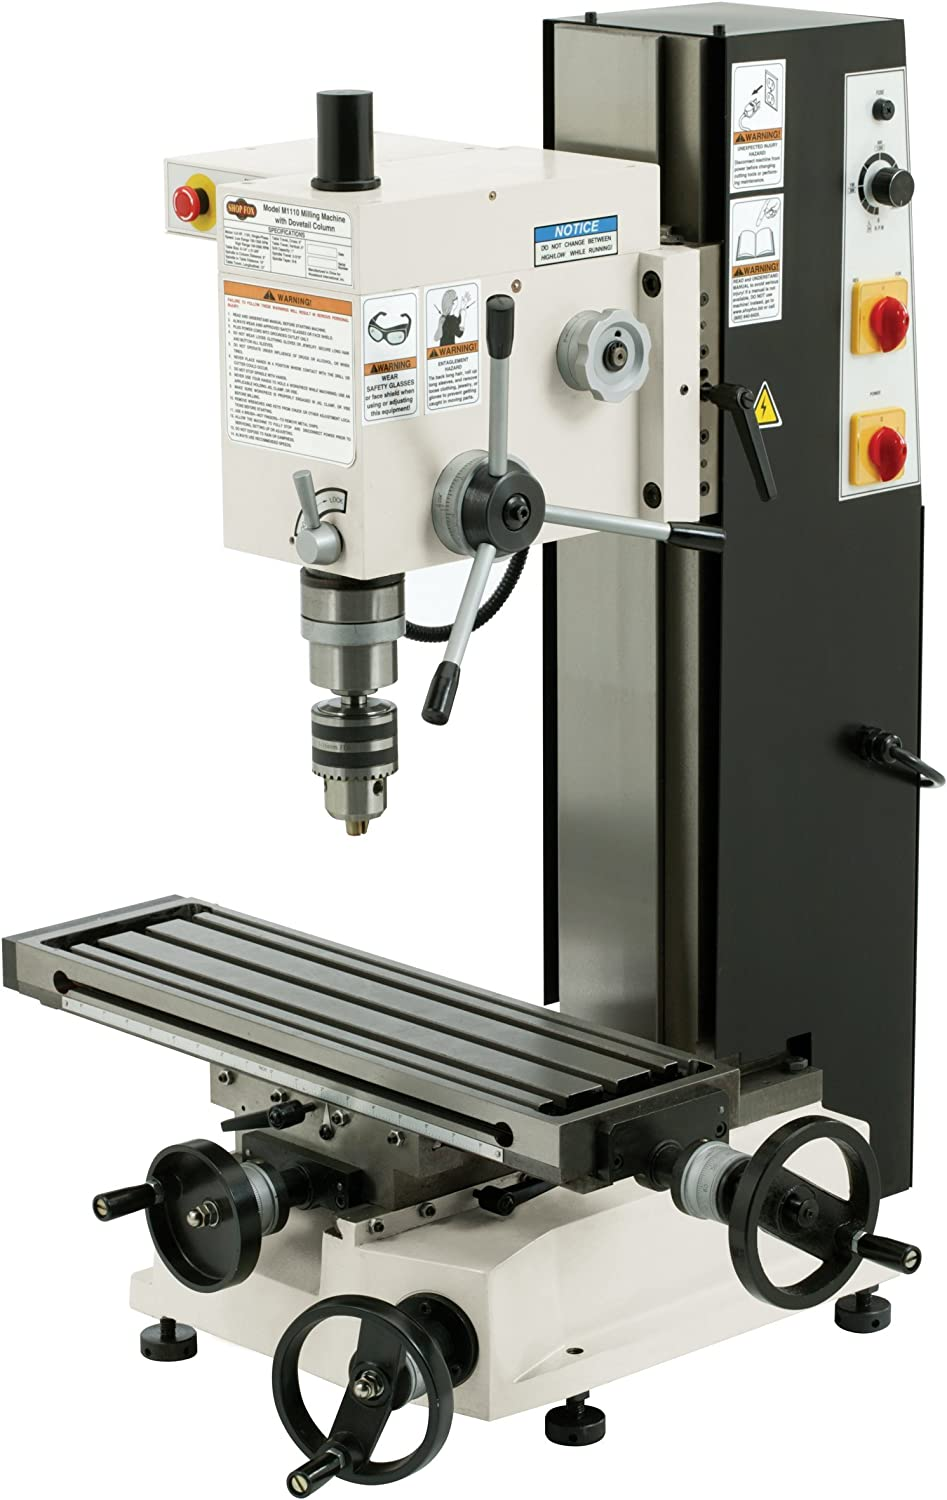 5. Shop FOX M1110 Variable Speed Mill and Drill